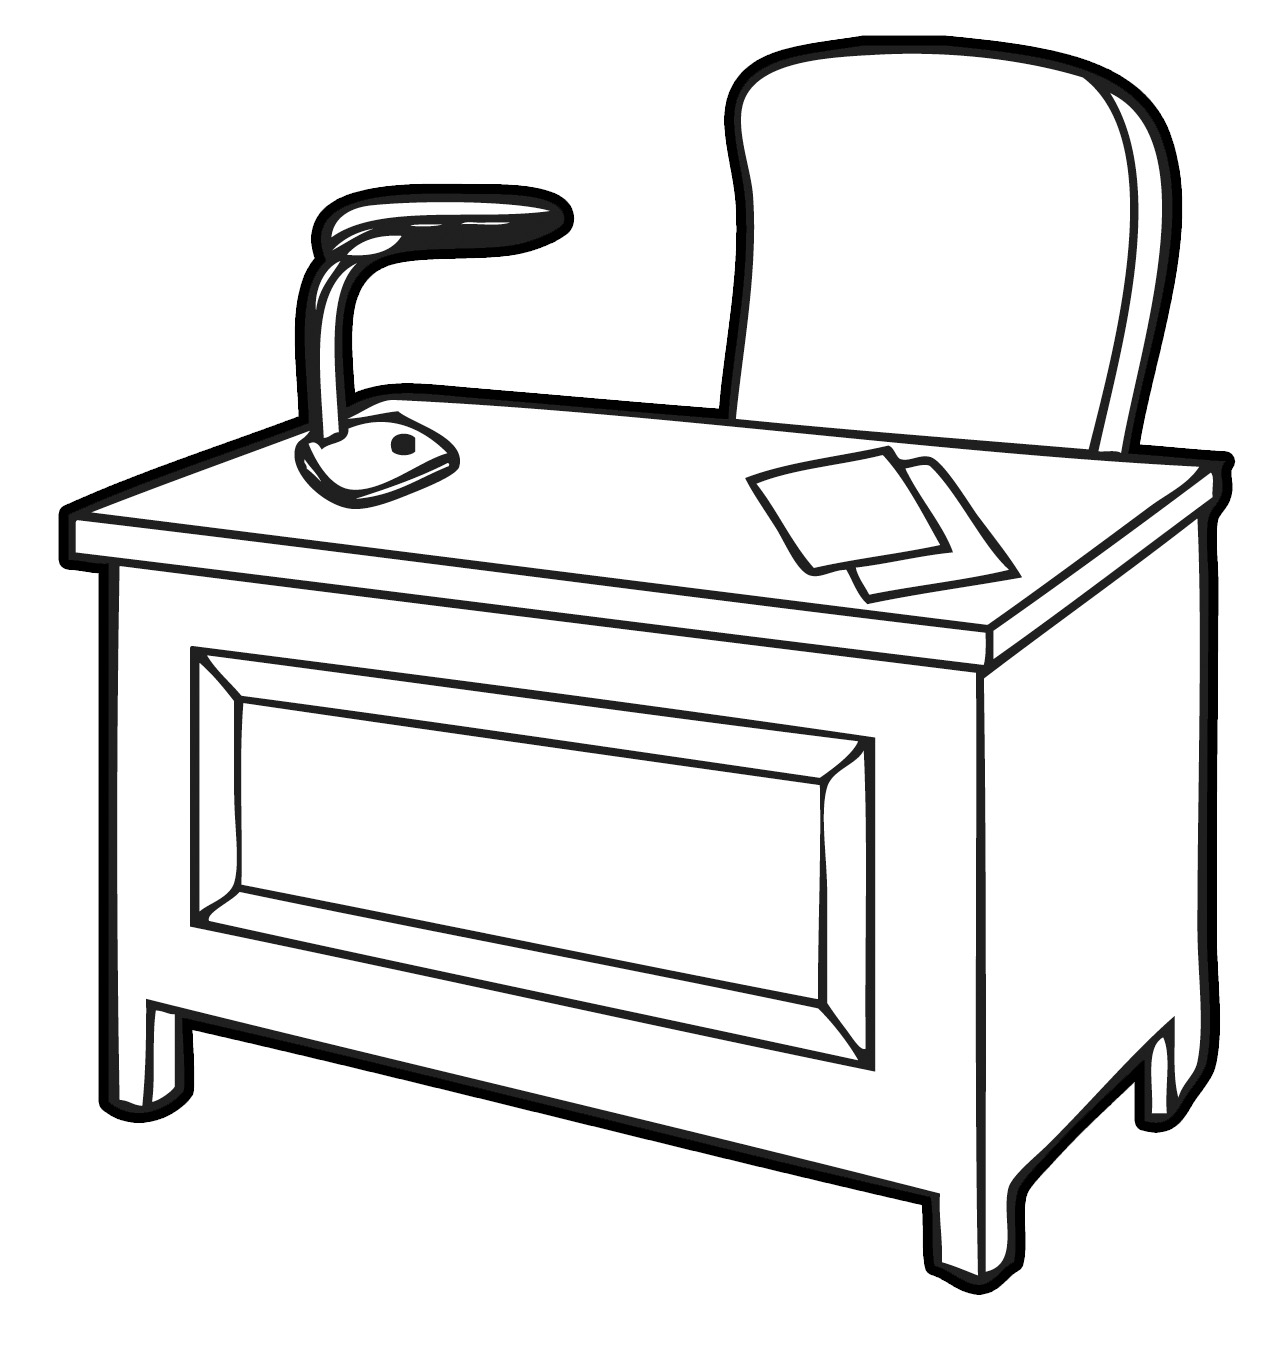 Desk Clipart Black And White | Clipart Panda - Free ...